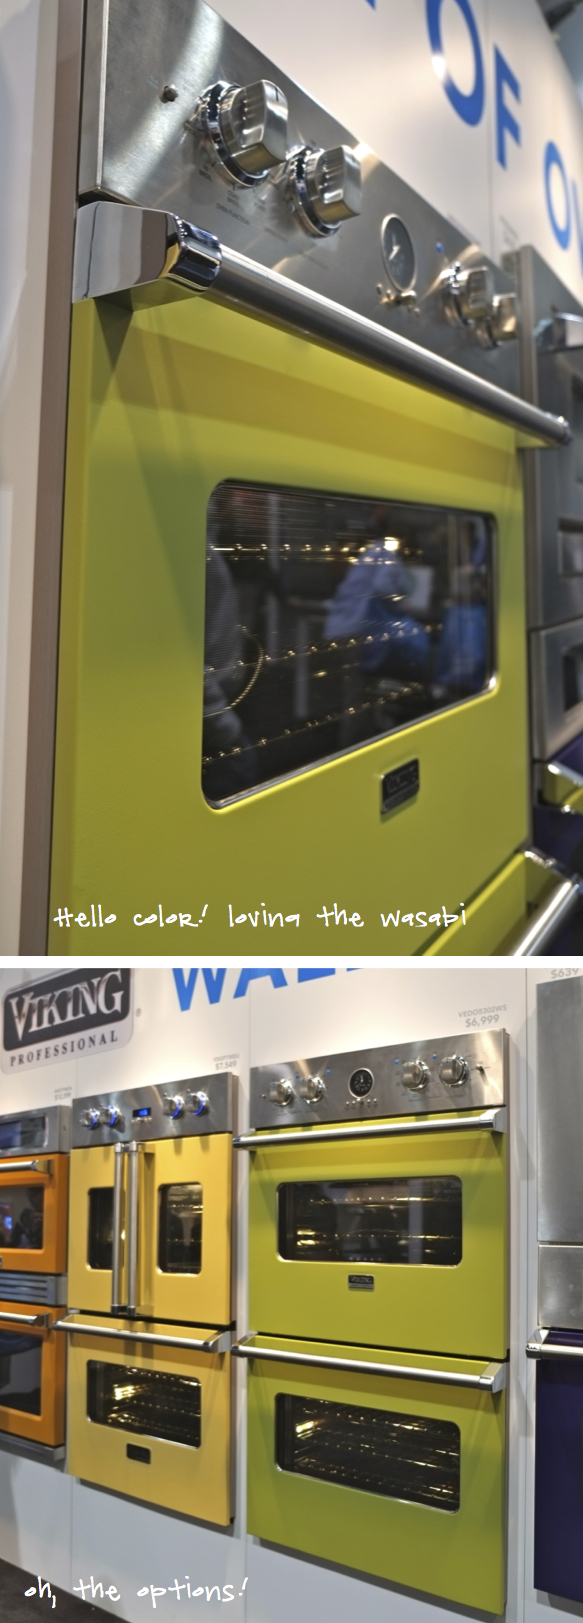 Kristina Crestin Design_Blog Post Viking Oven Wasabi